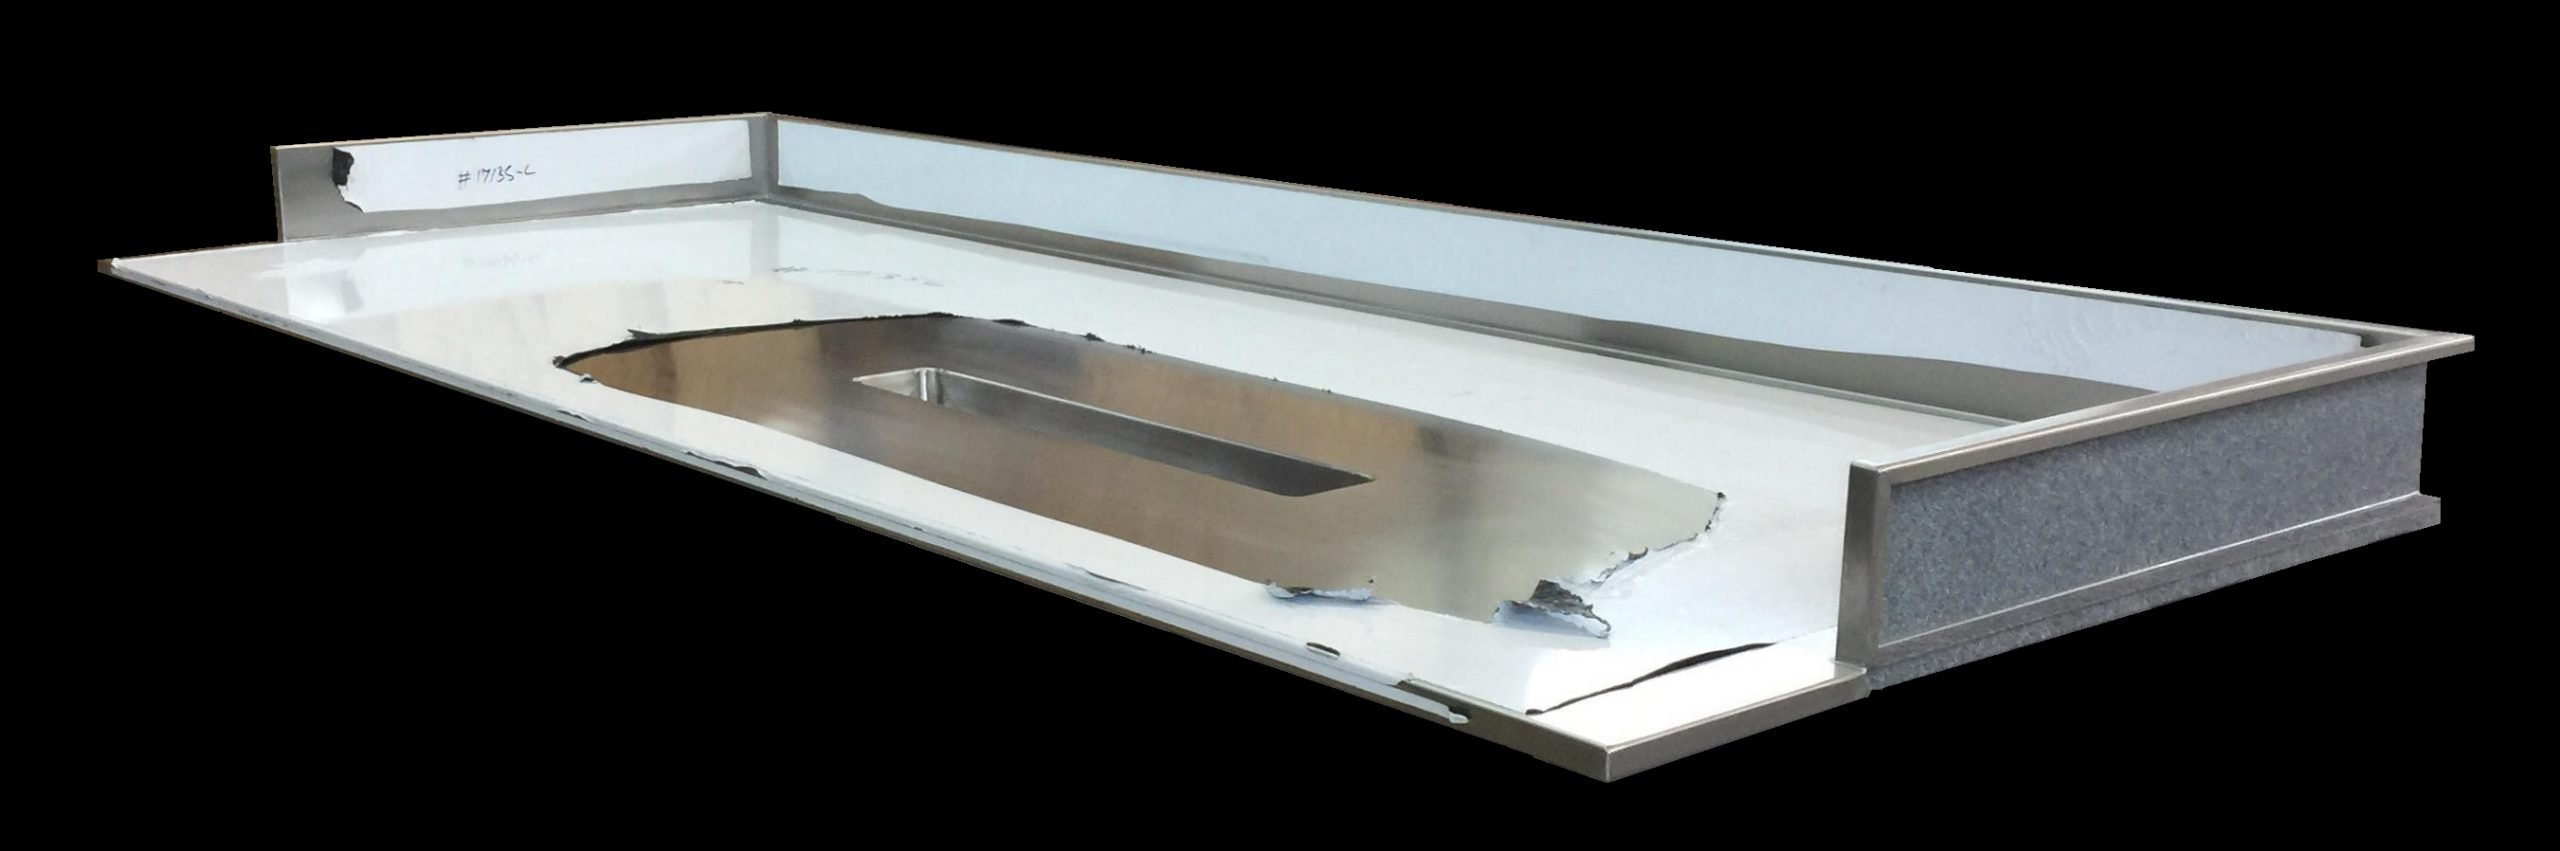 Stainless Steel Custom Top with integral rectangular chute